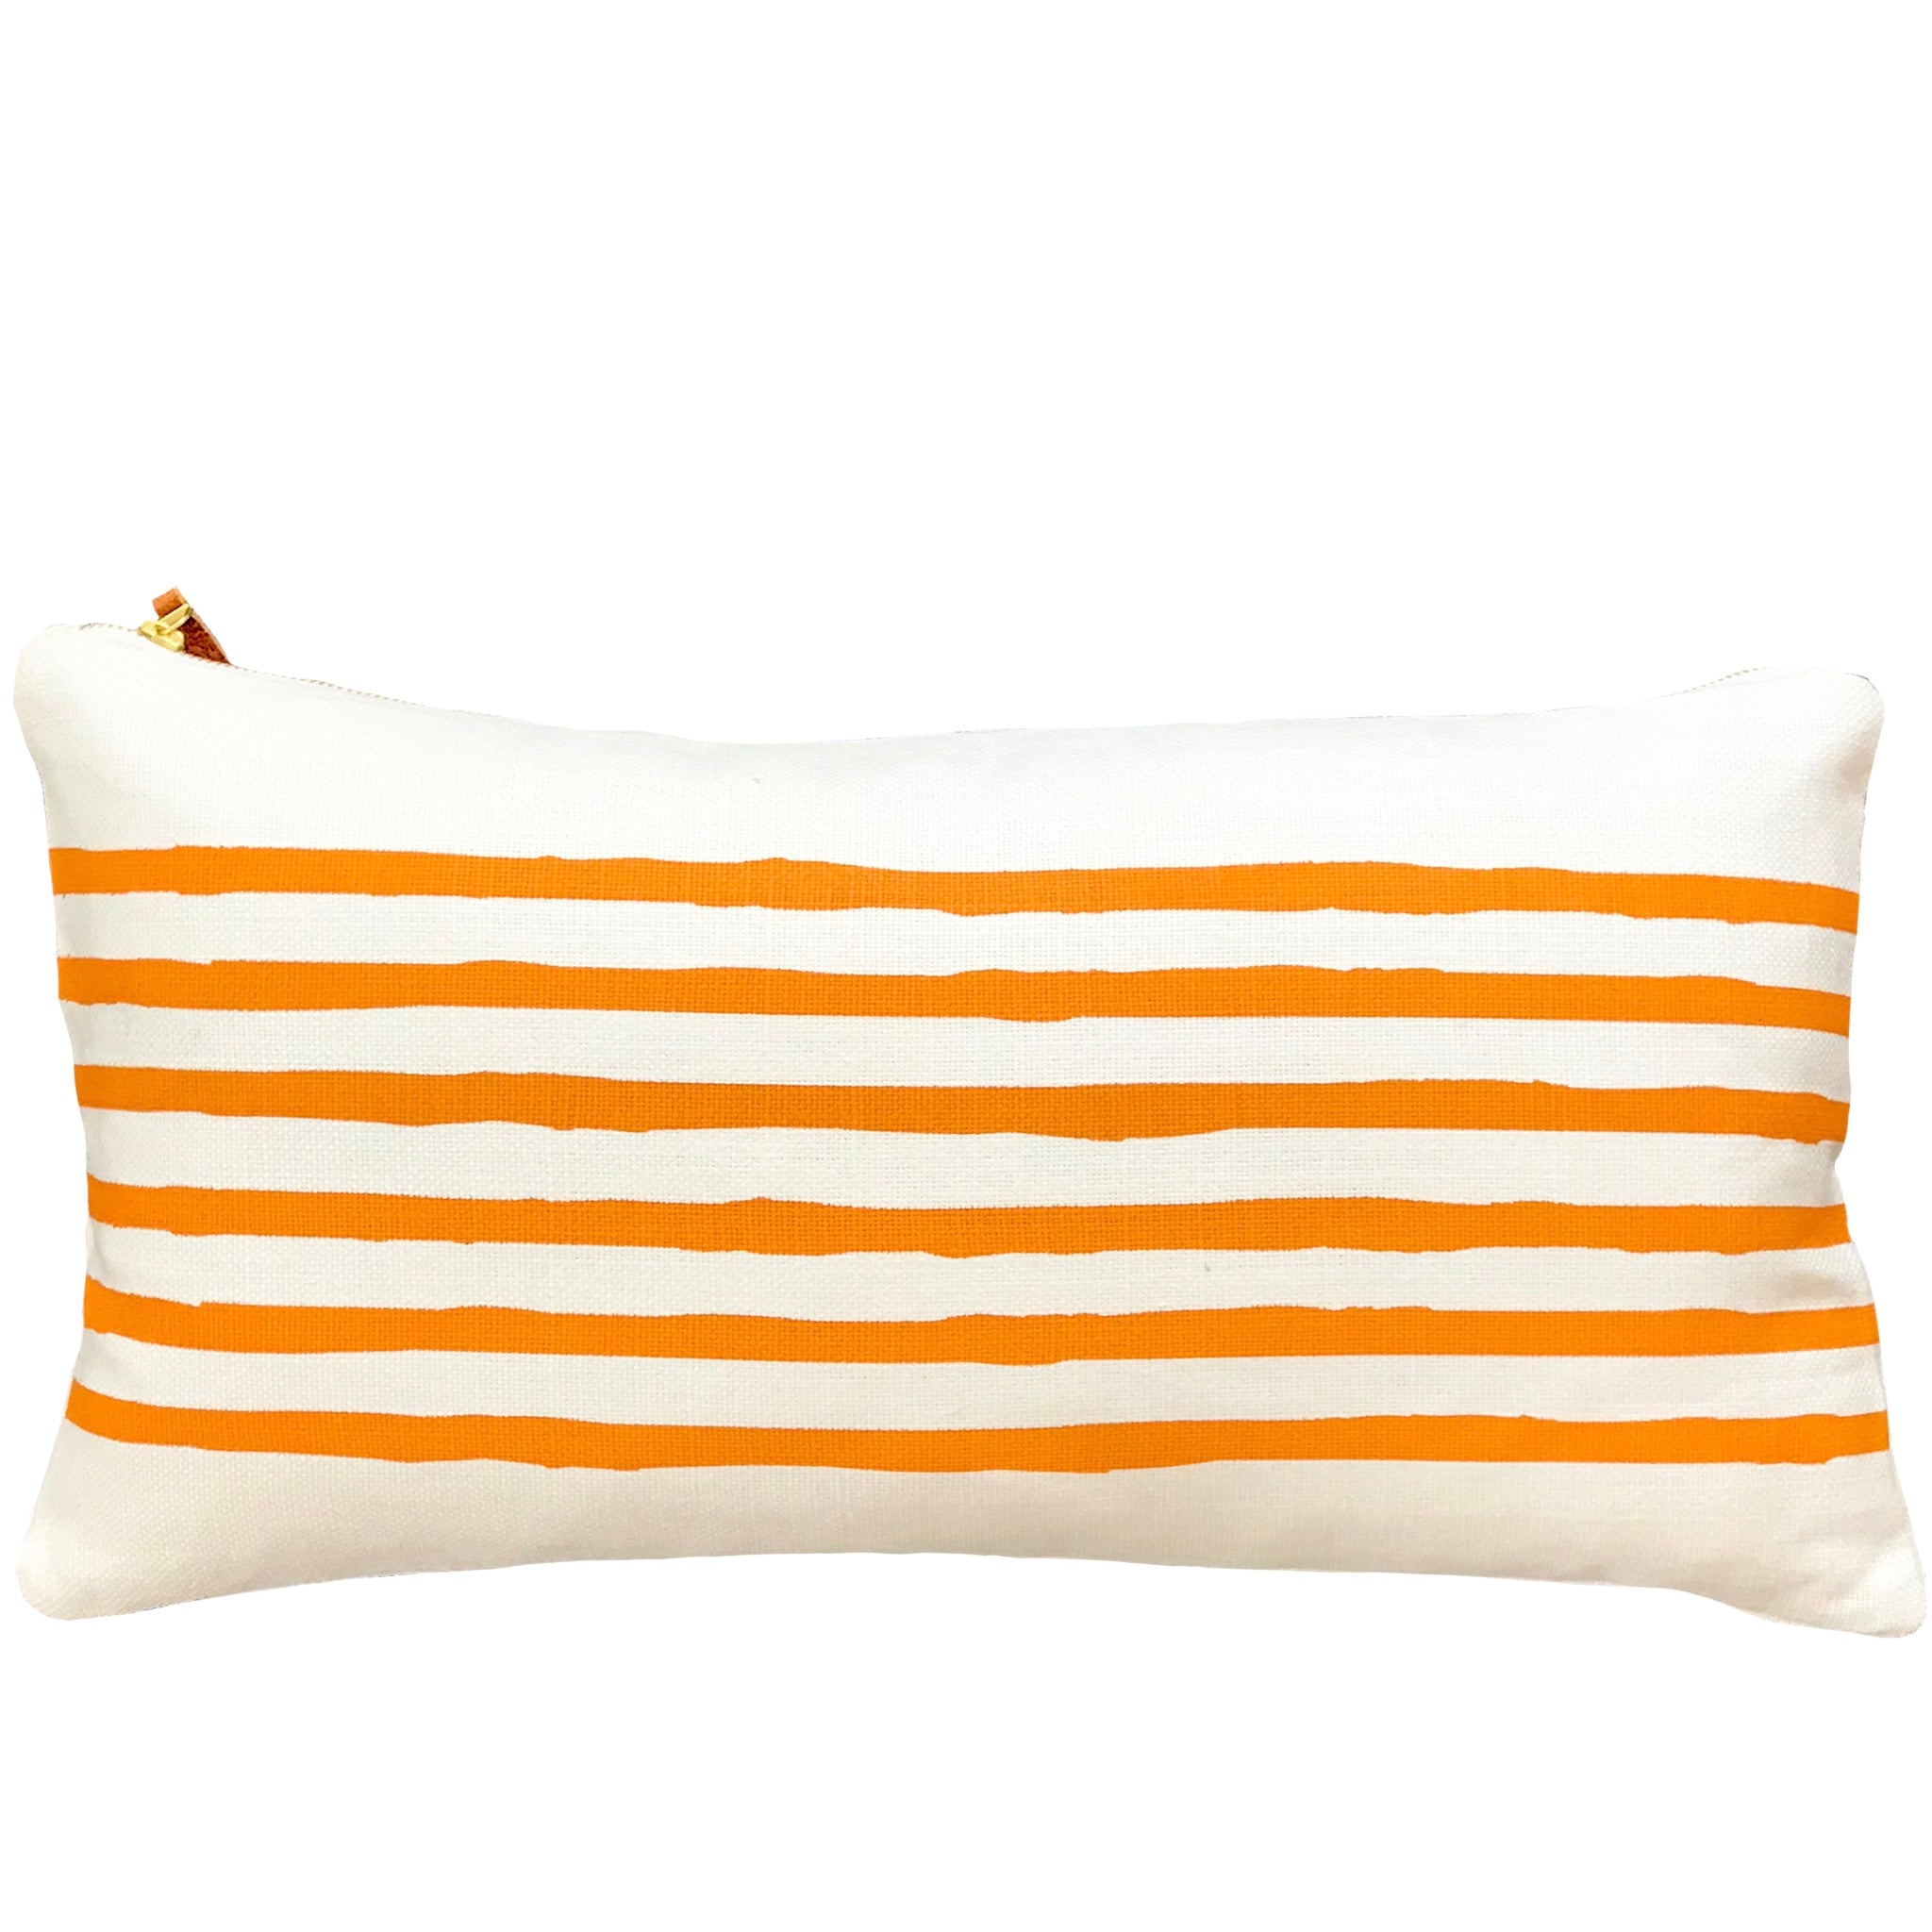 TANGERINE 6 LINE LUMBAR PILLOW COVER